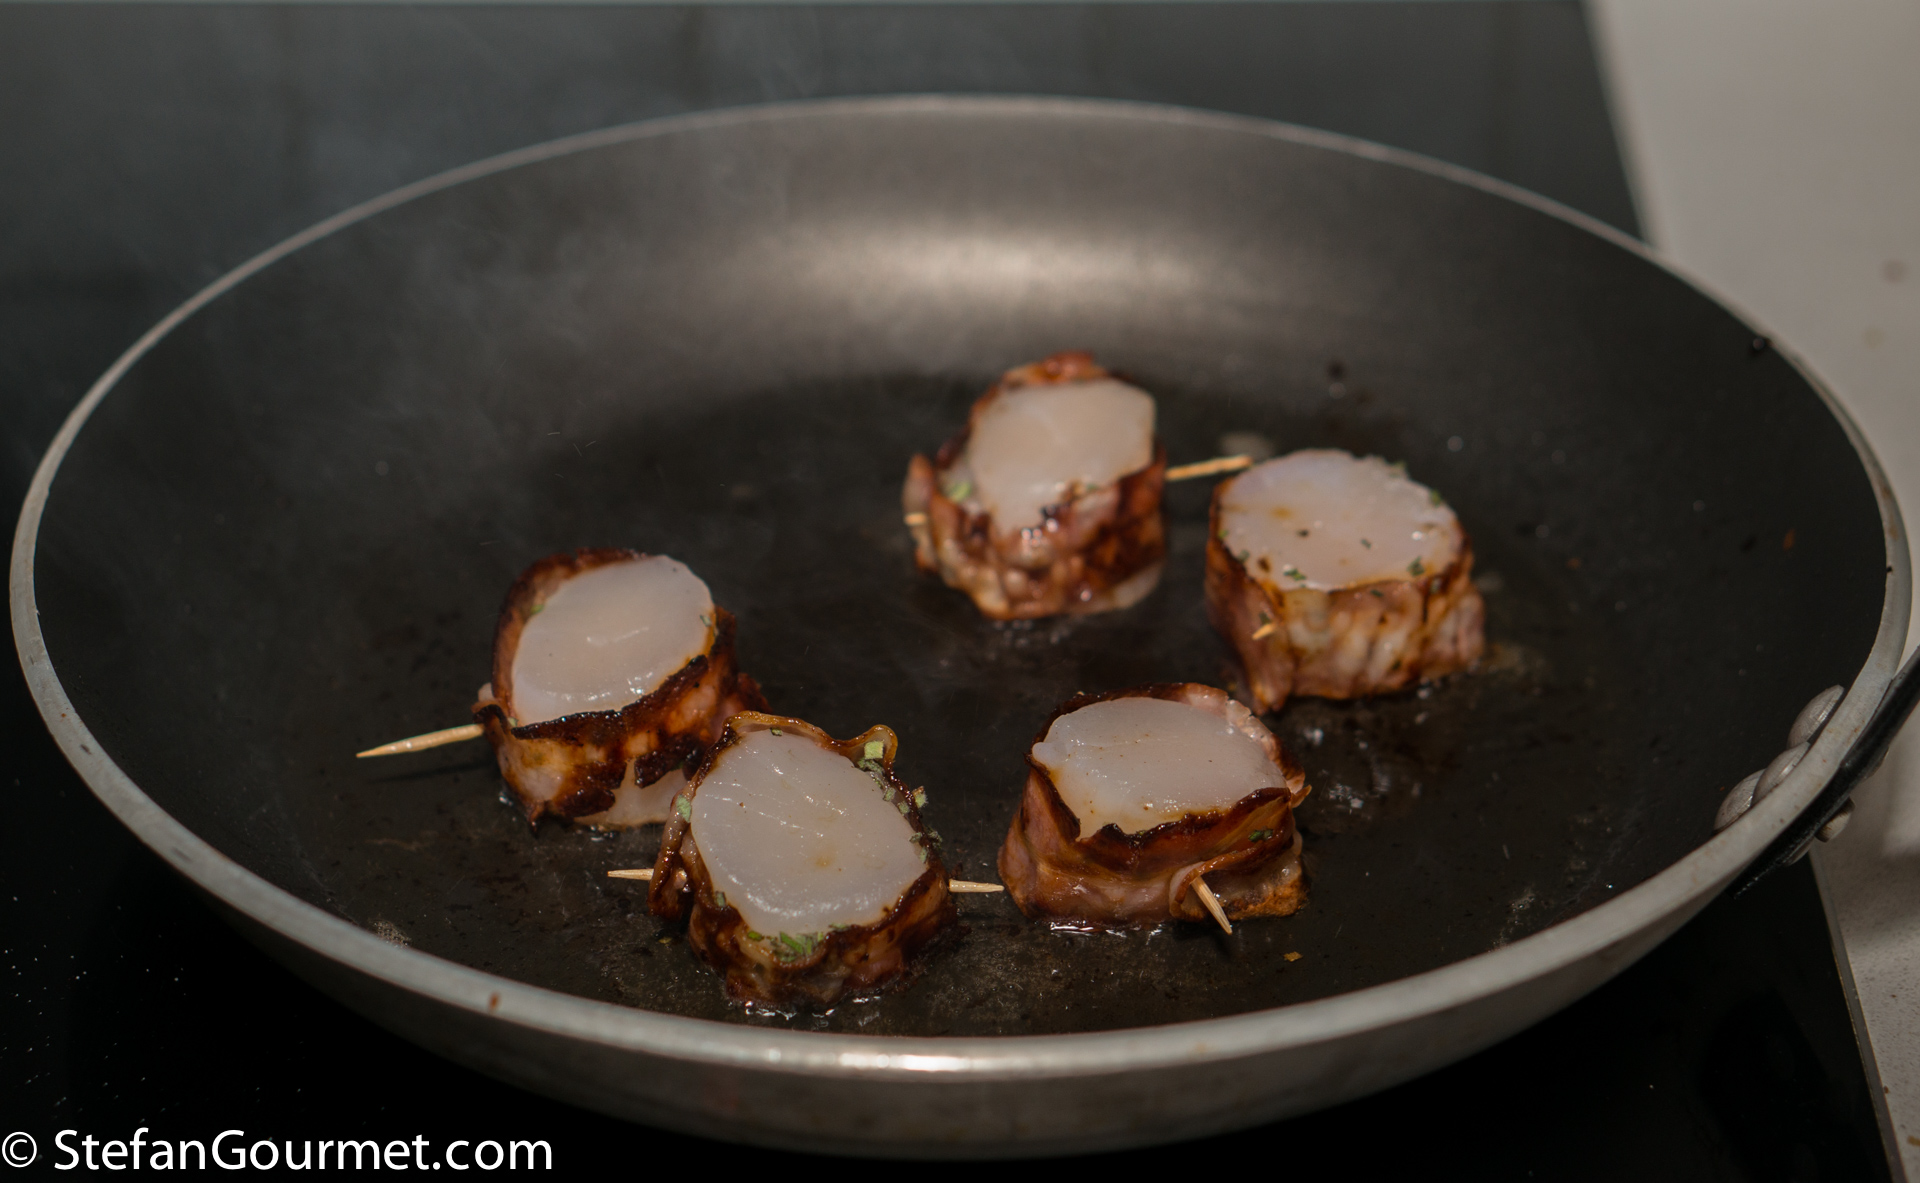 When The Butter Is Very Hot, Add The Baconwrapped Scallops